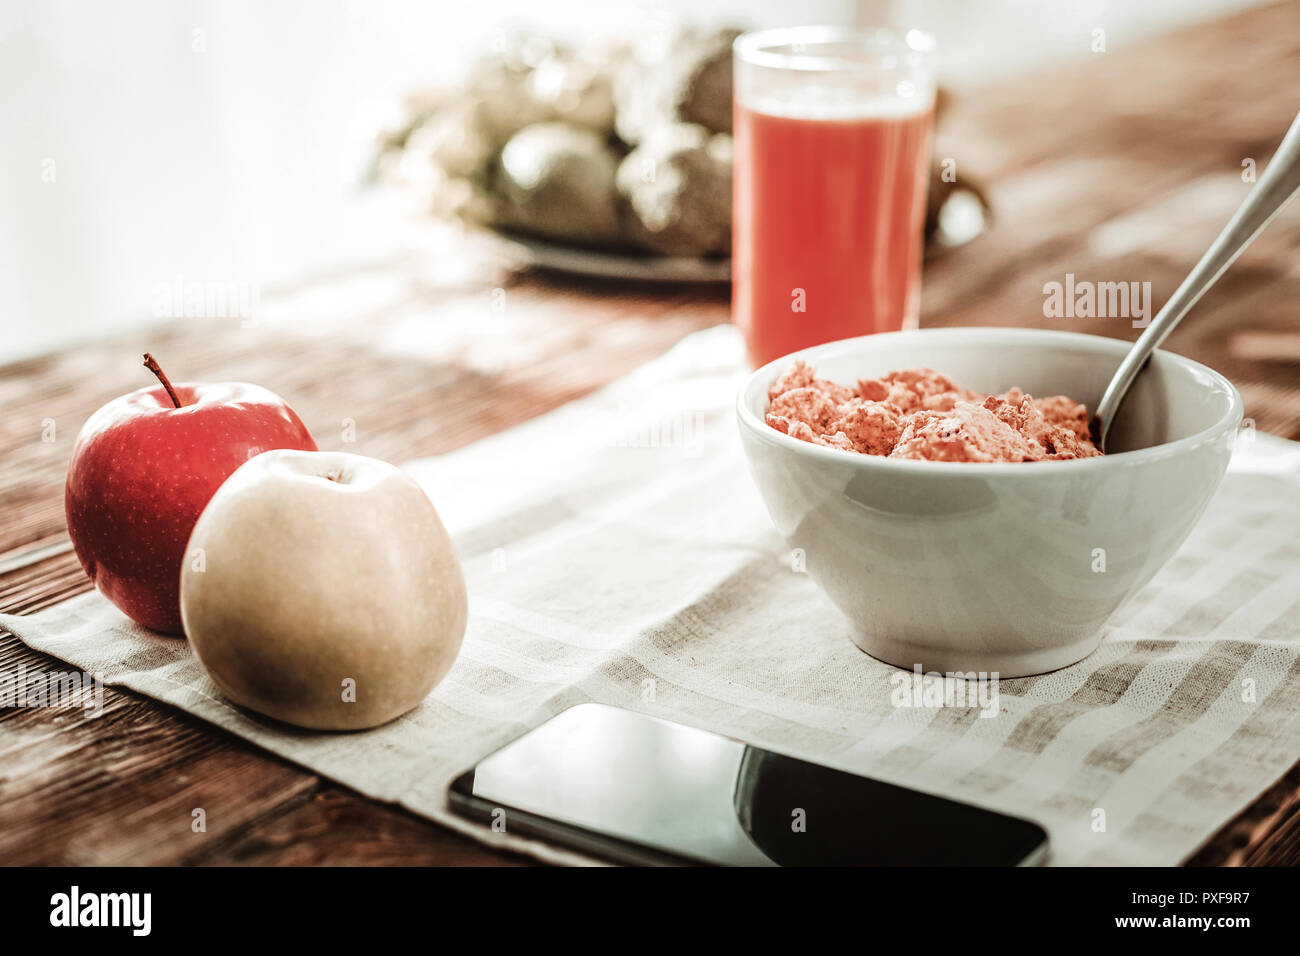 Close up of a smartphone lying near the bowl with cereal - Stock Image